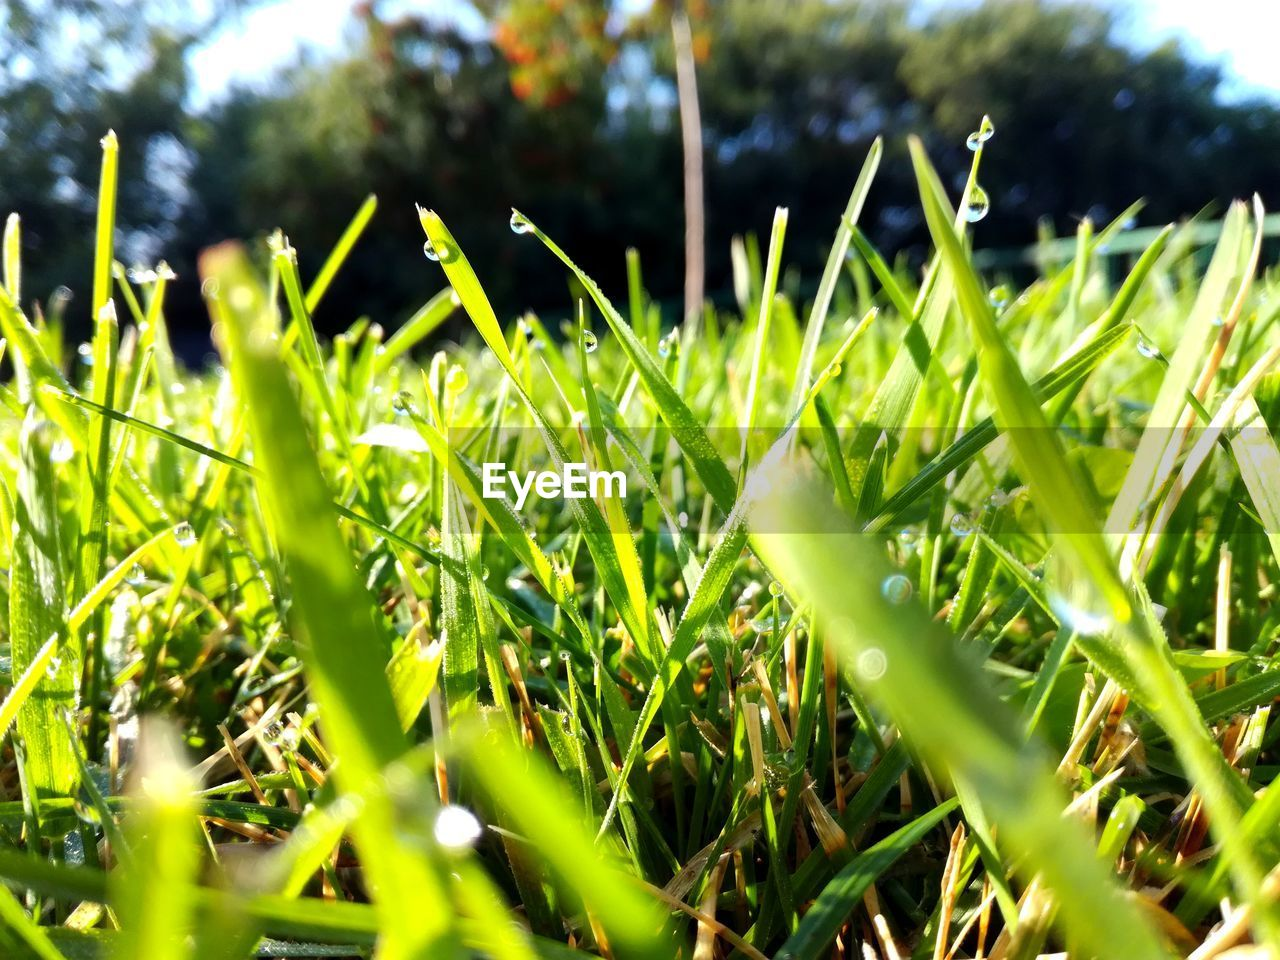 green color, growth, grass, selective focus, nature, no people, day, close-up, outdoors, beauty in nature, freshness